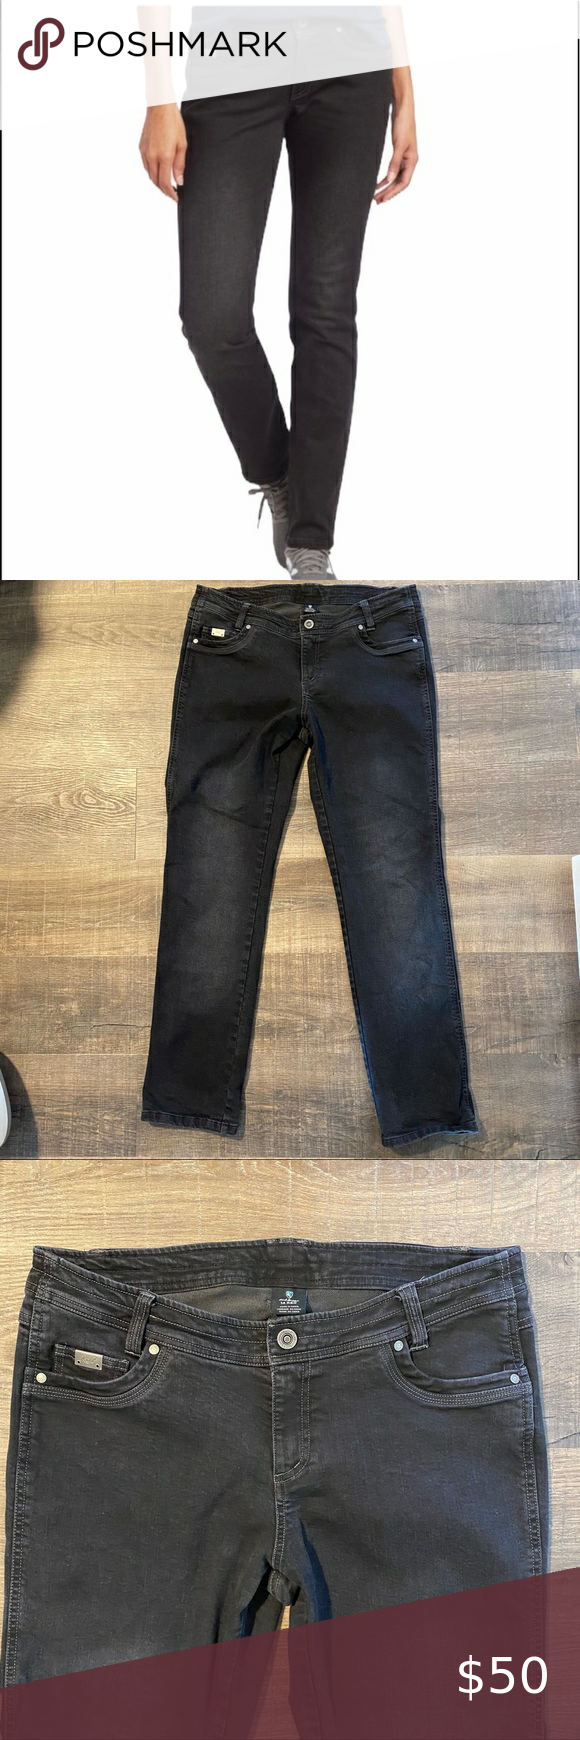 Kuhl Black Thermik Straight Jeans Great Pre Owned Condition Approx Measurements 18 Waist 9 Rise 30 5 Inseam J Kuhl Jeans Str Straight Jeans Kuhl Black